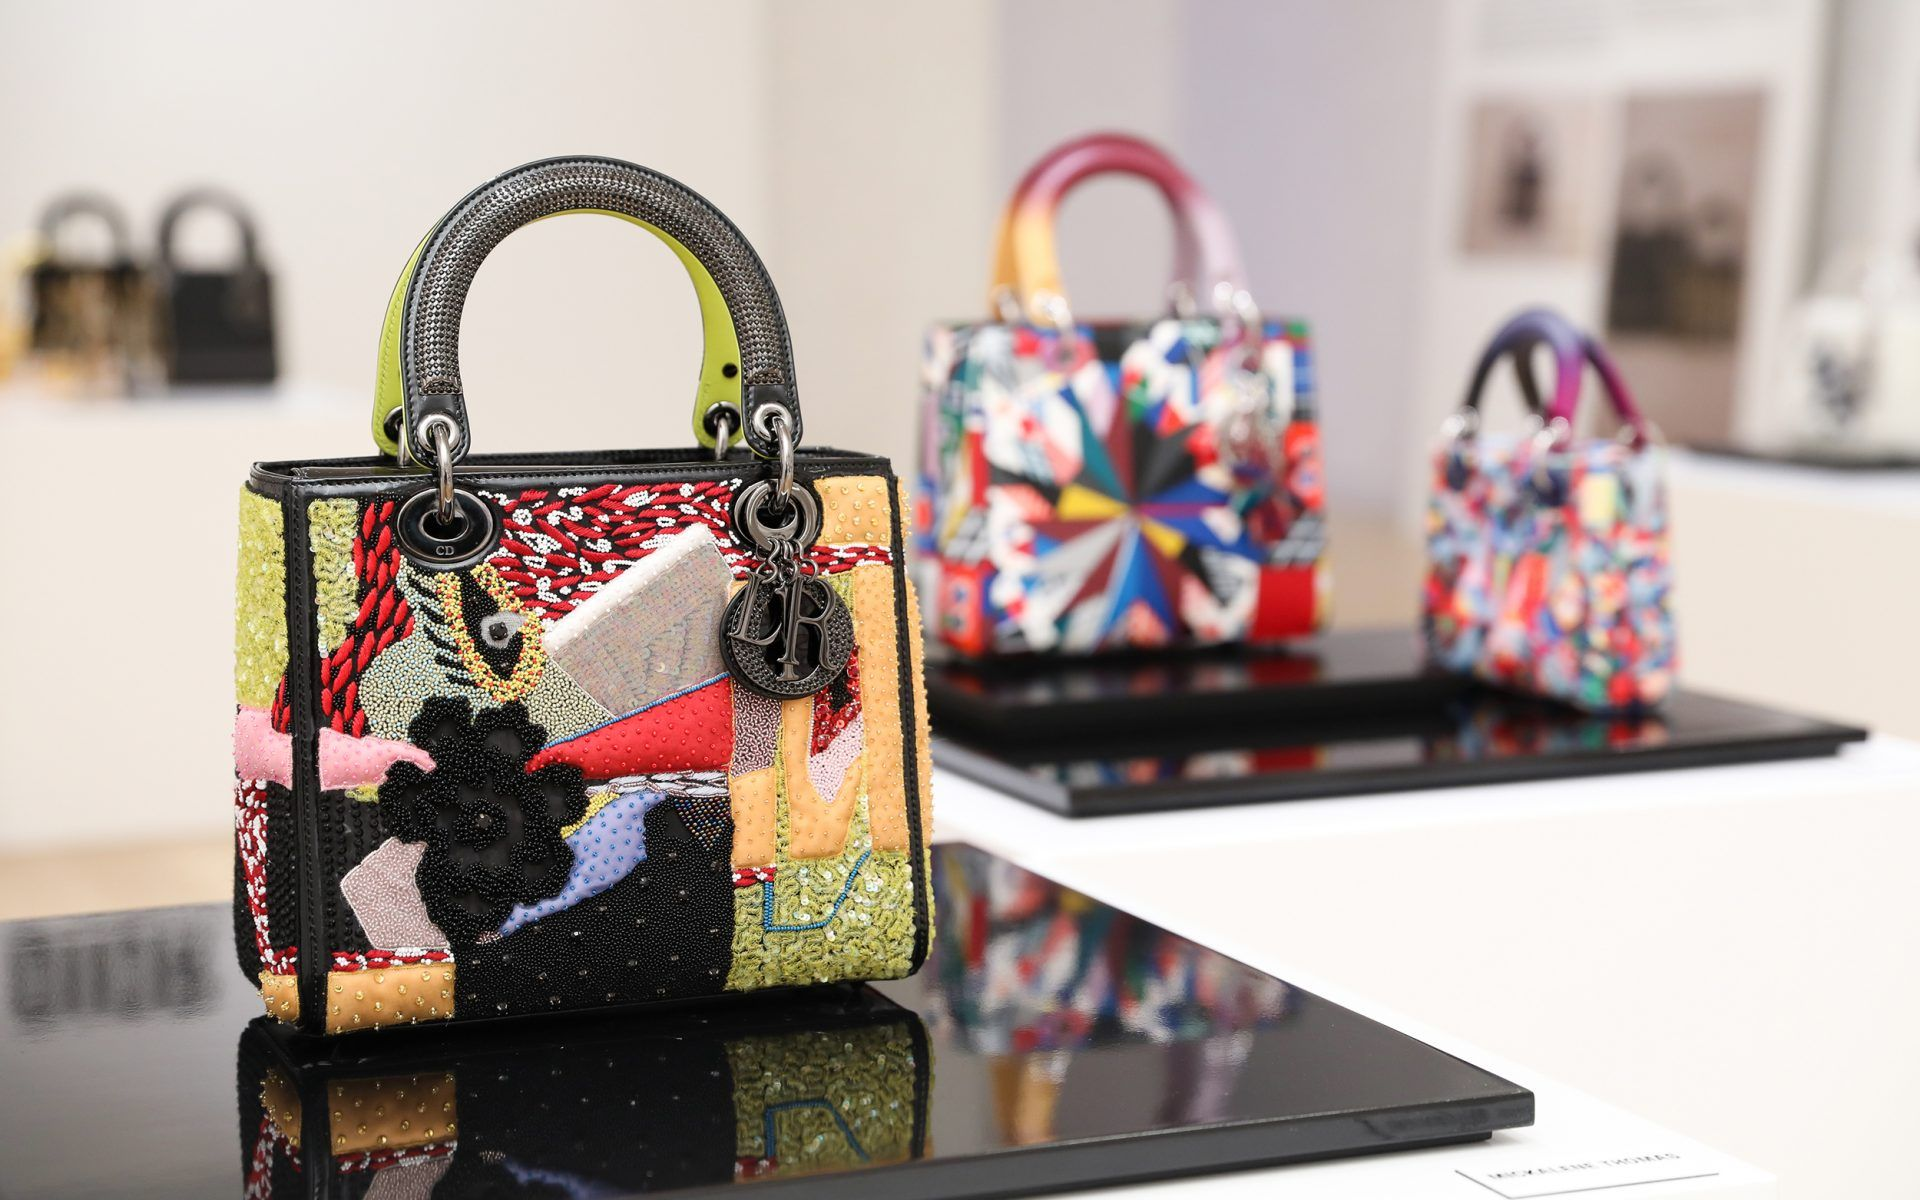 Dior Enlists 11 Women Artists To Create Chic New Handbag Collection Galerie Dior Artist Bag New Handbags